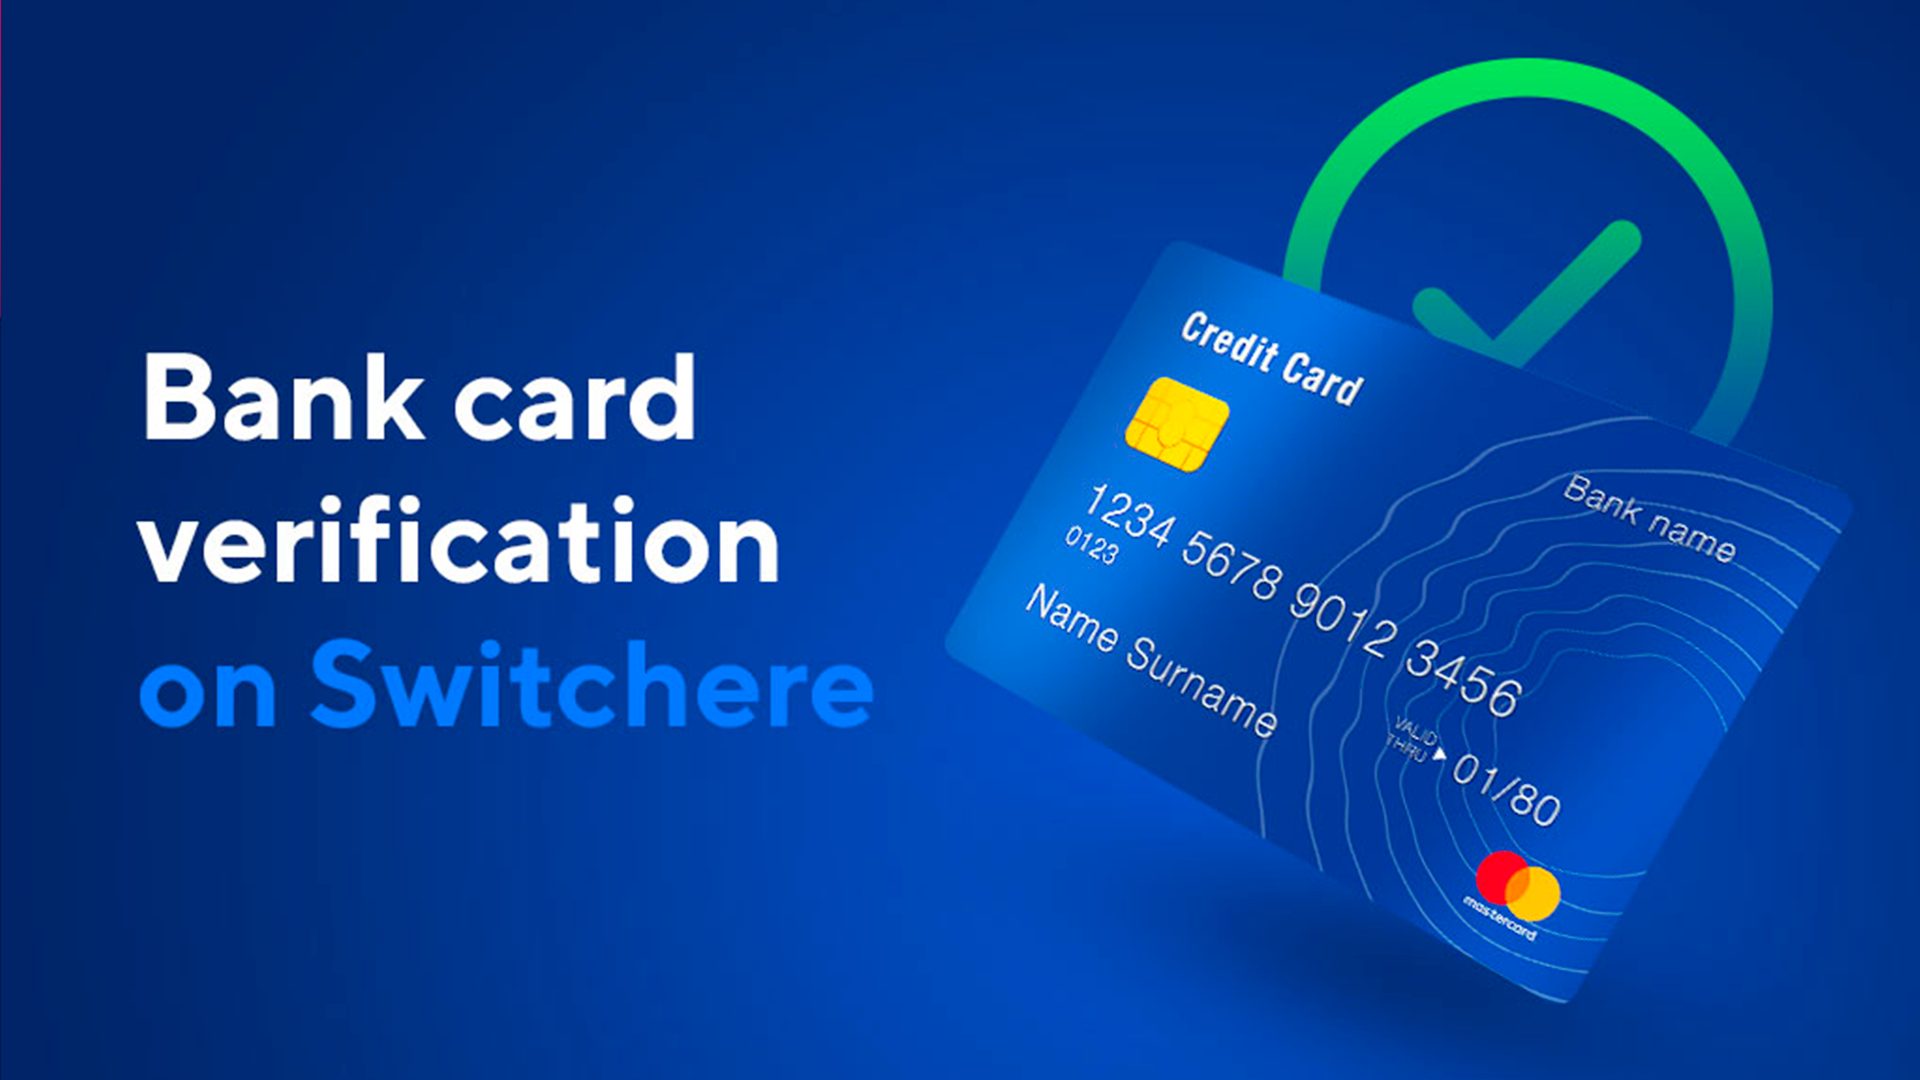 How to Verify Your Bank Card on Switchere